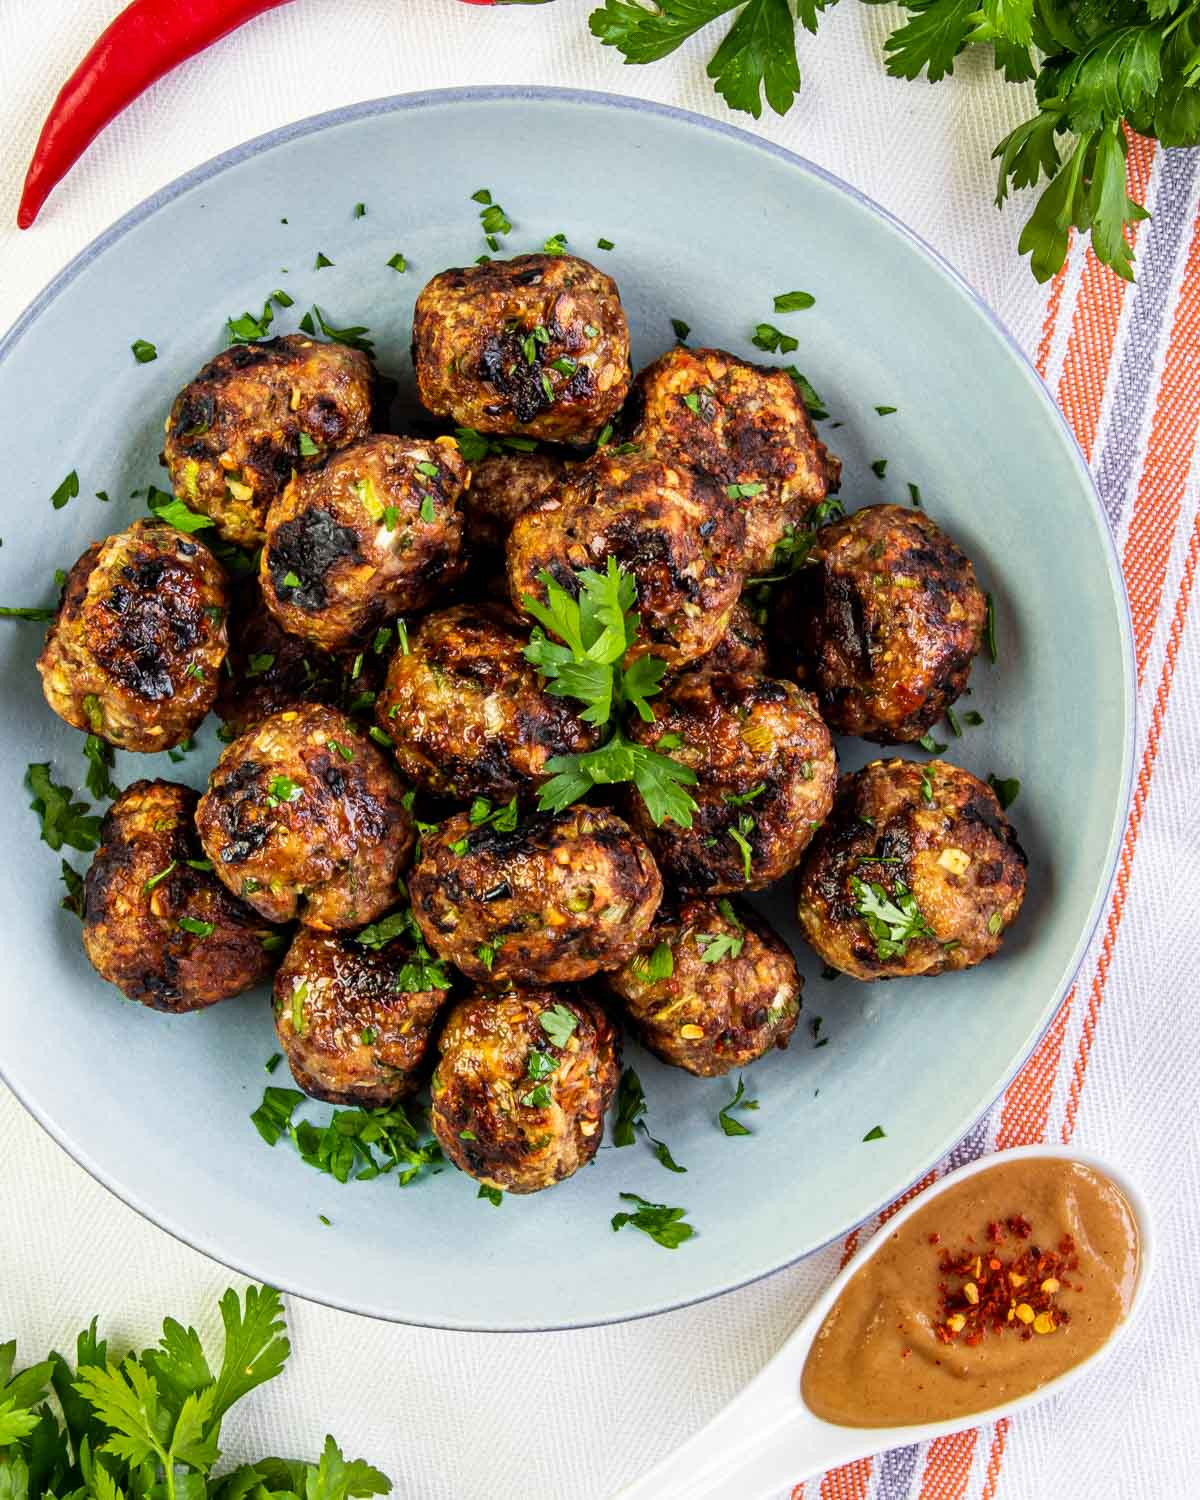 vietnamese meatballs garnished with cilantro on a blue plate.